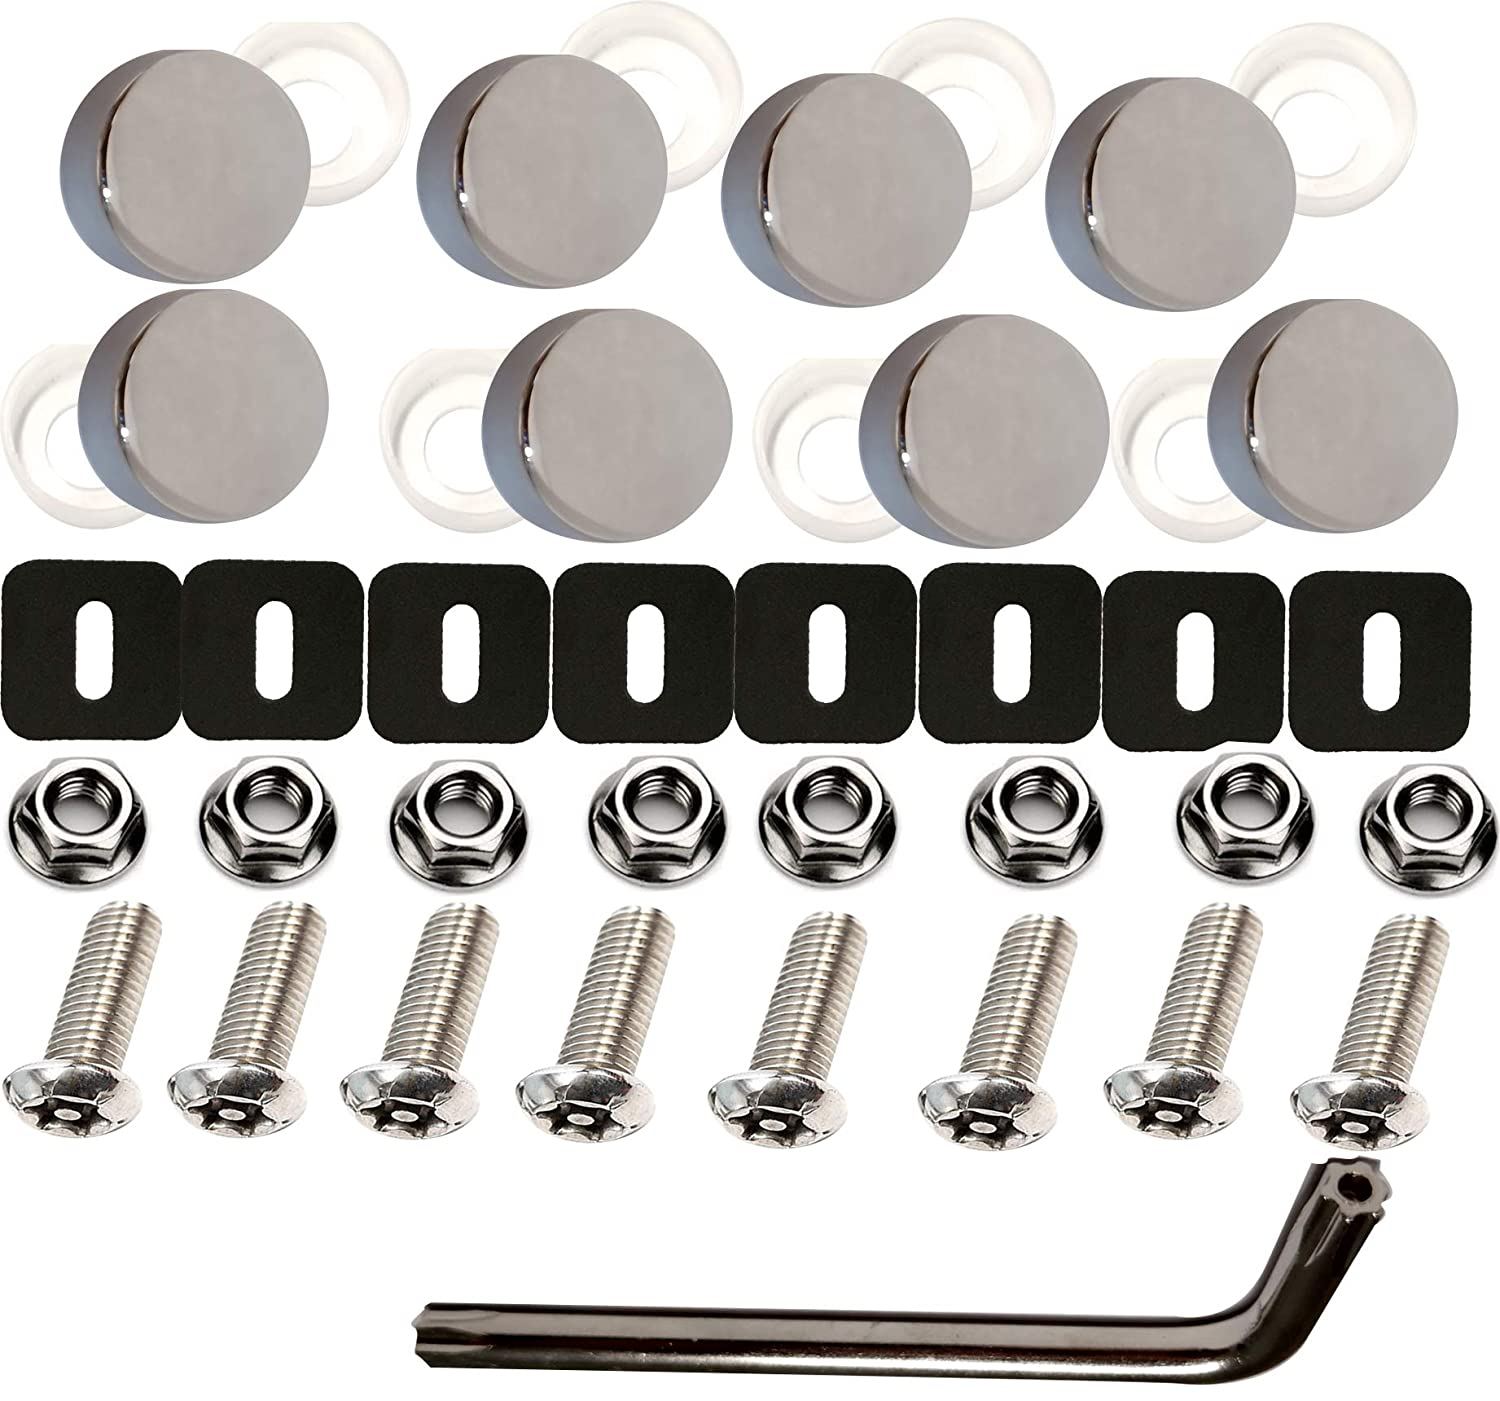 Anti-Theft License Plate Screws-8 Security Machine Screws Give Tamper-Resistant Mirror Polished White License Plate Screw Covers